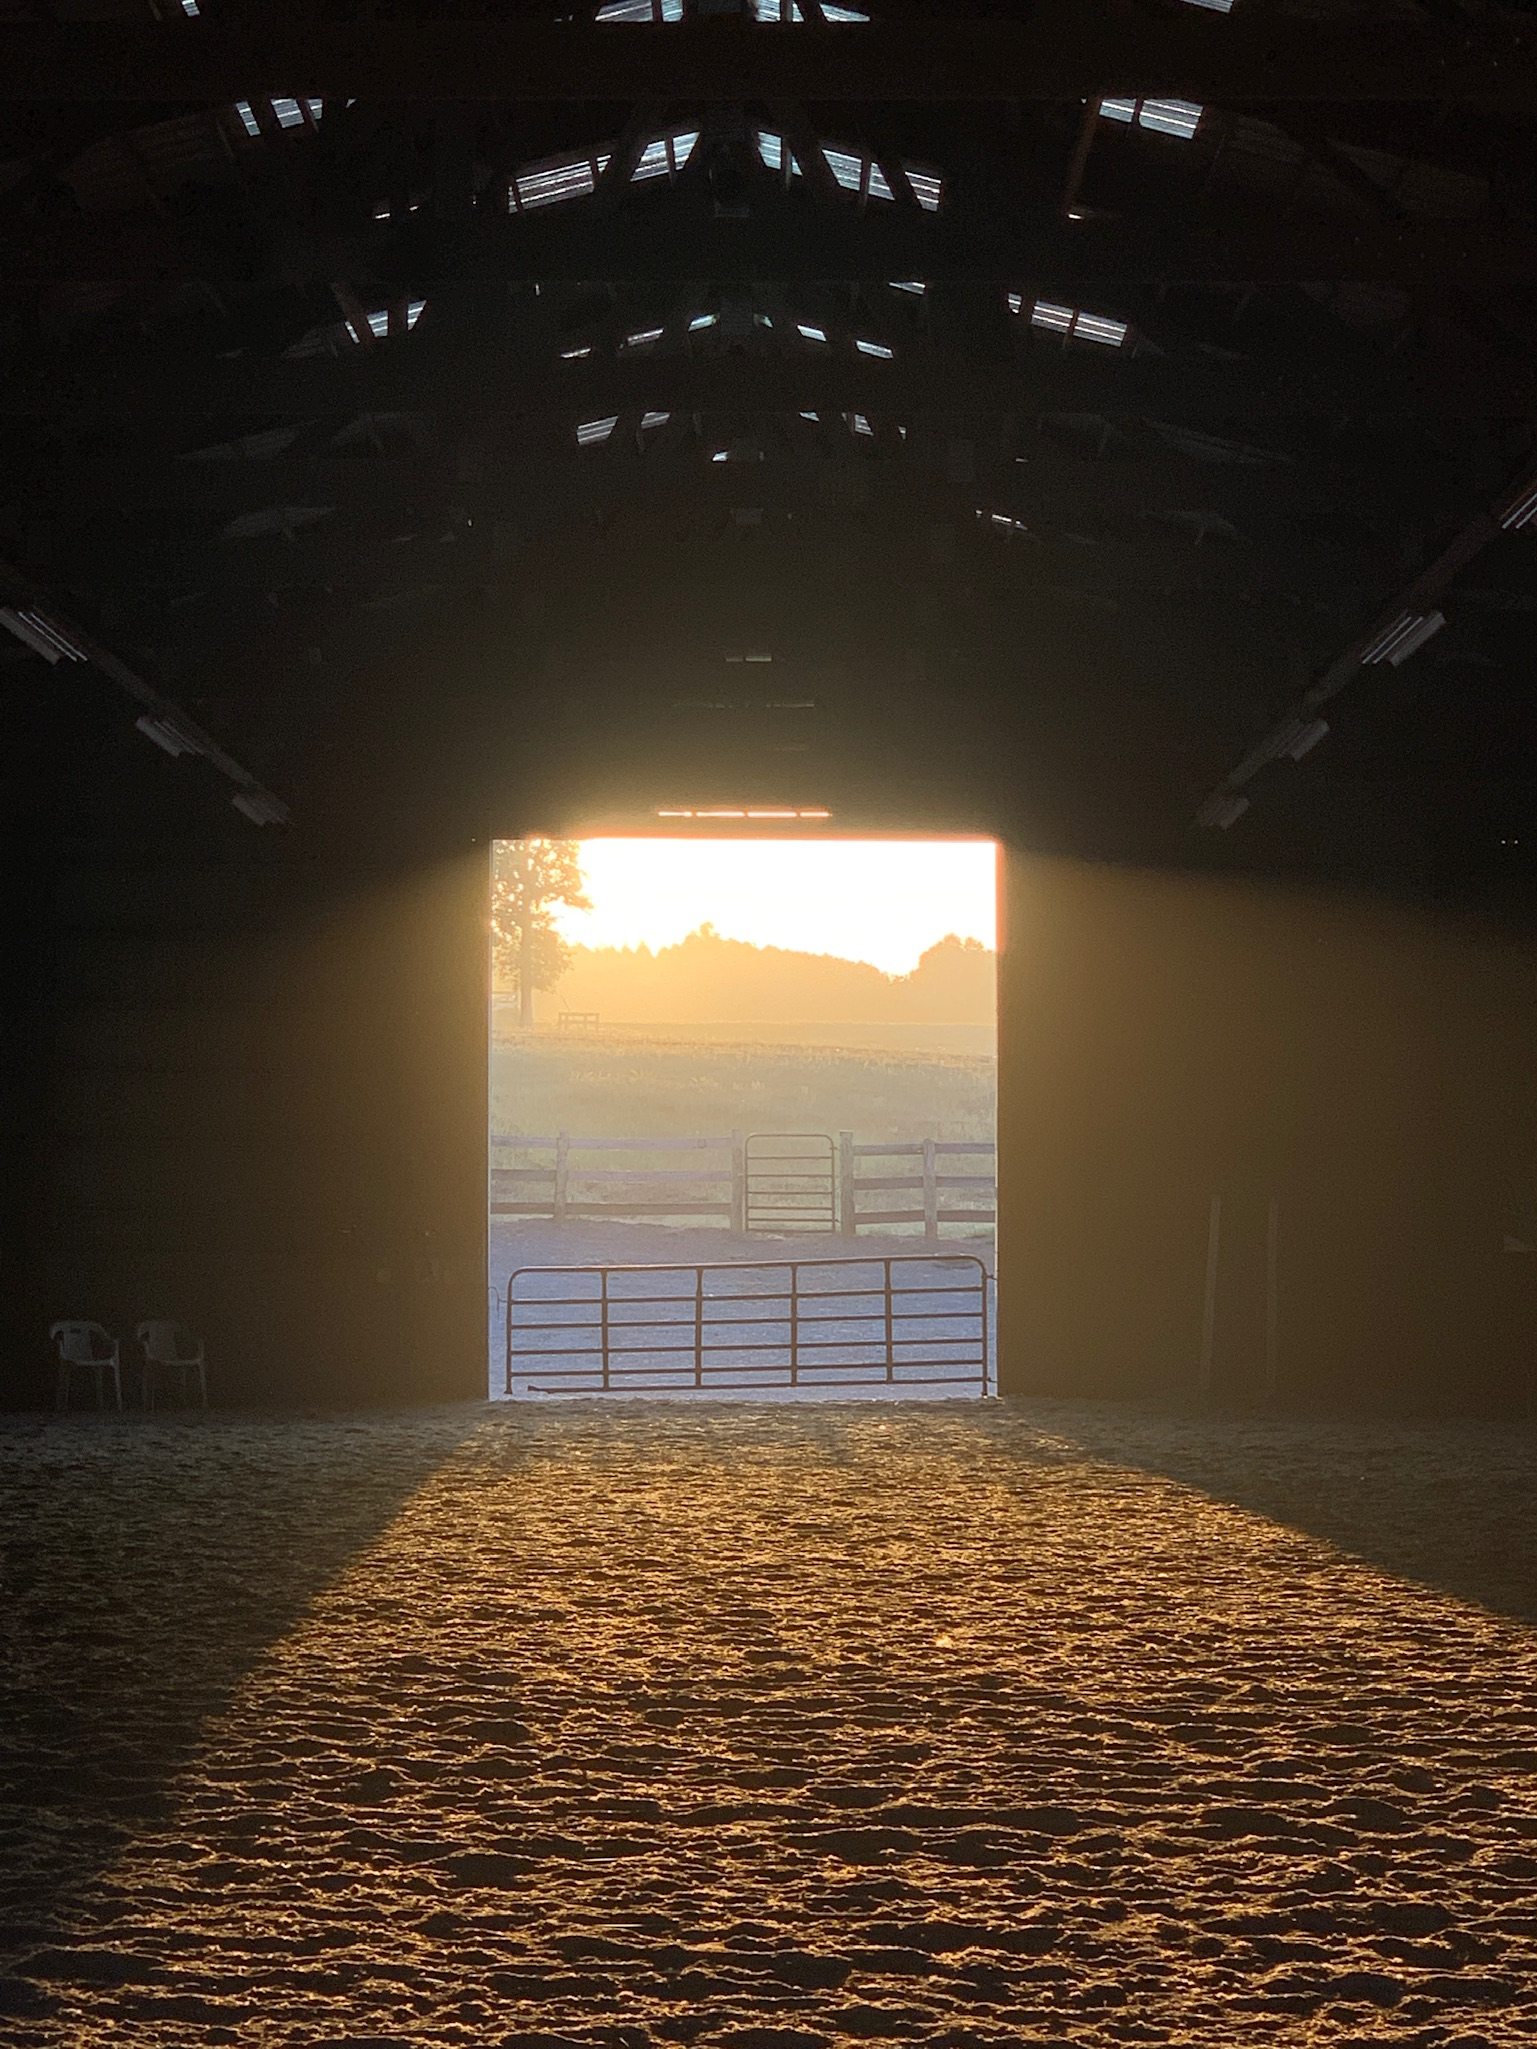 Indoor arena at sunrise.